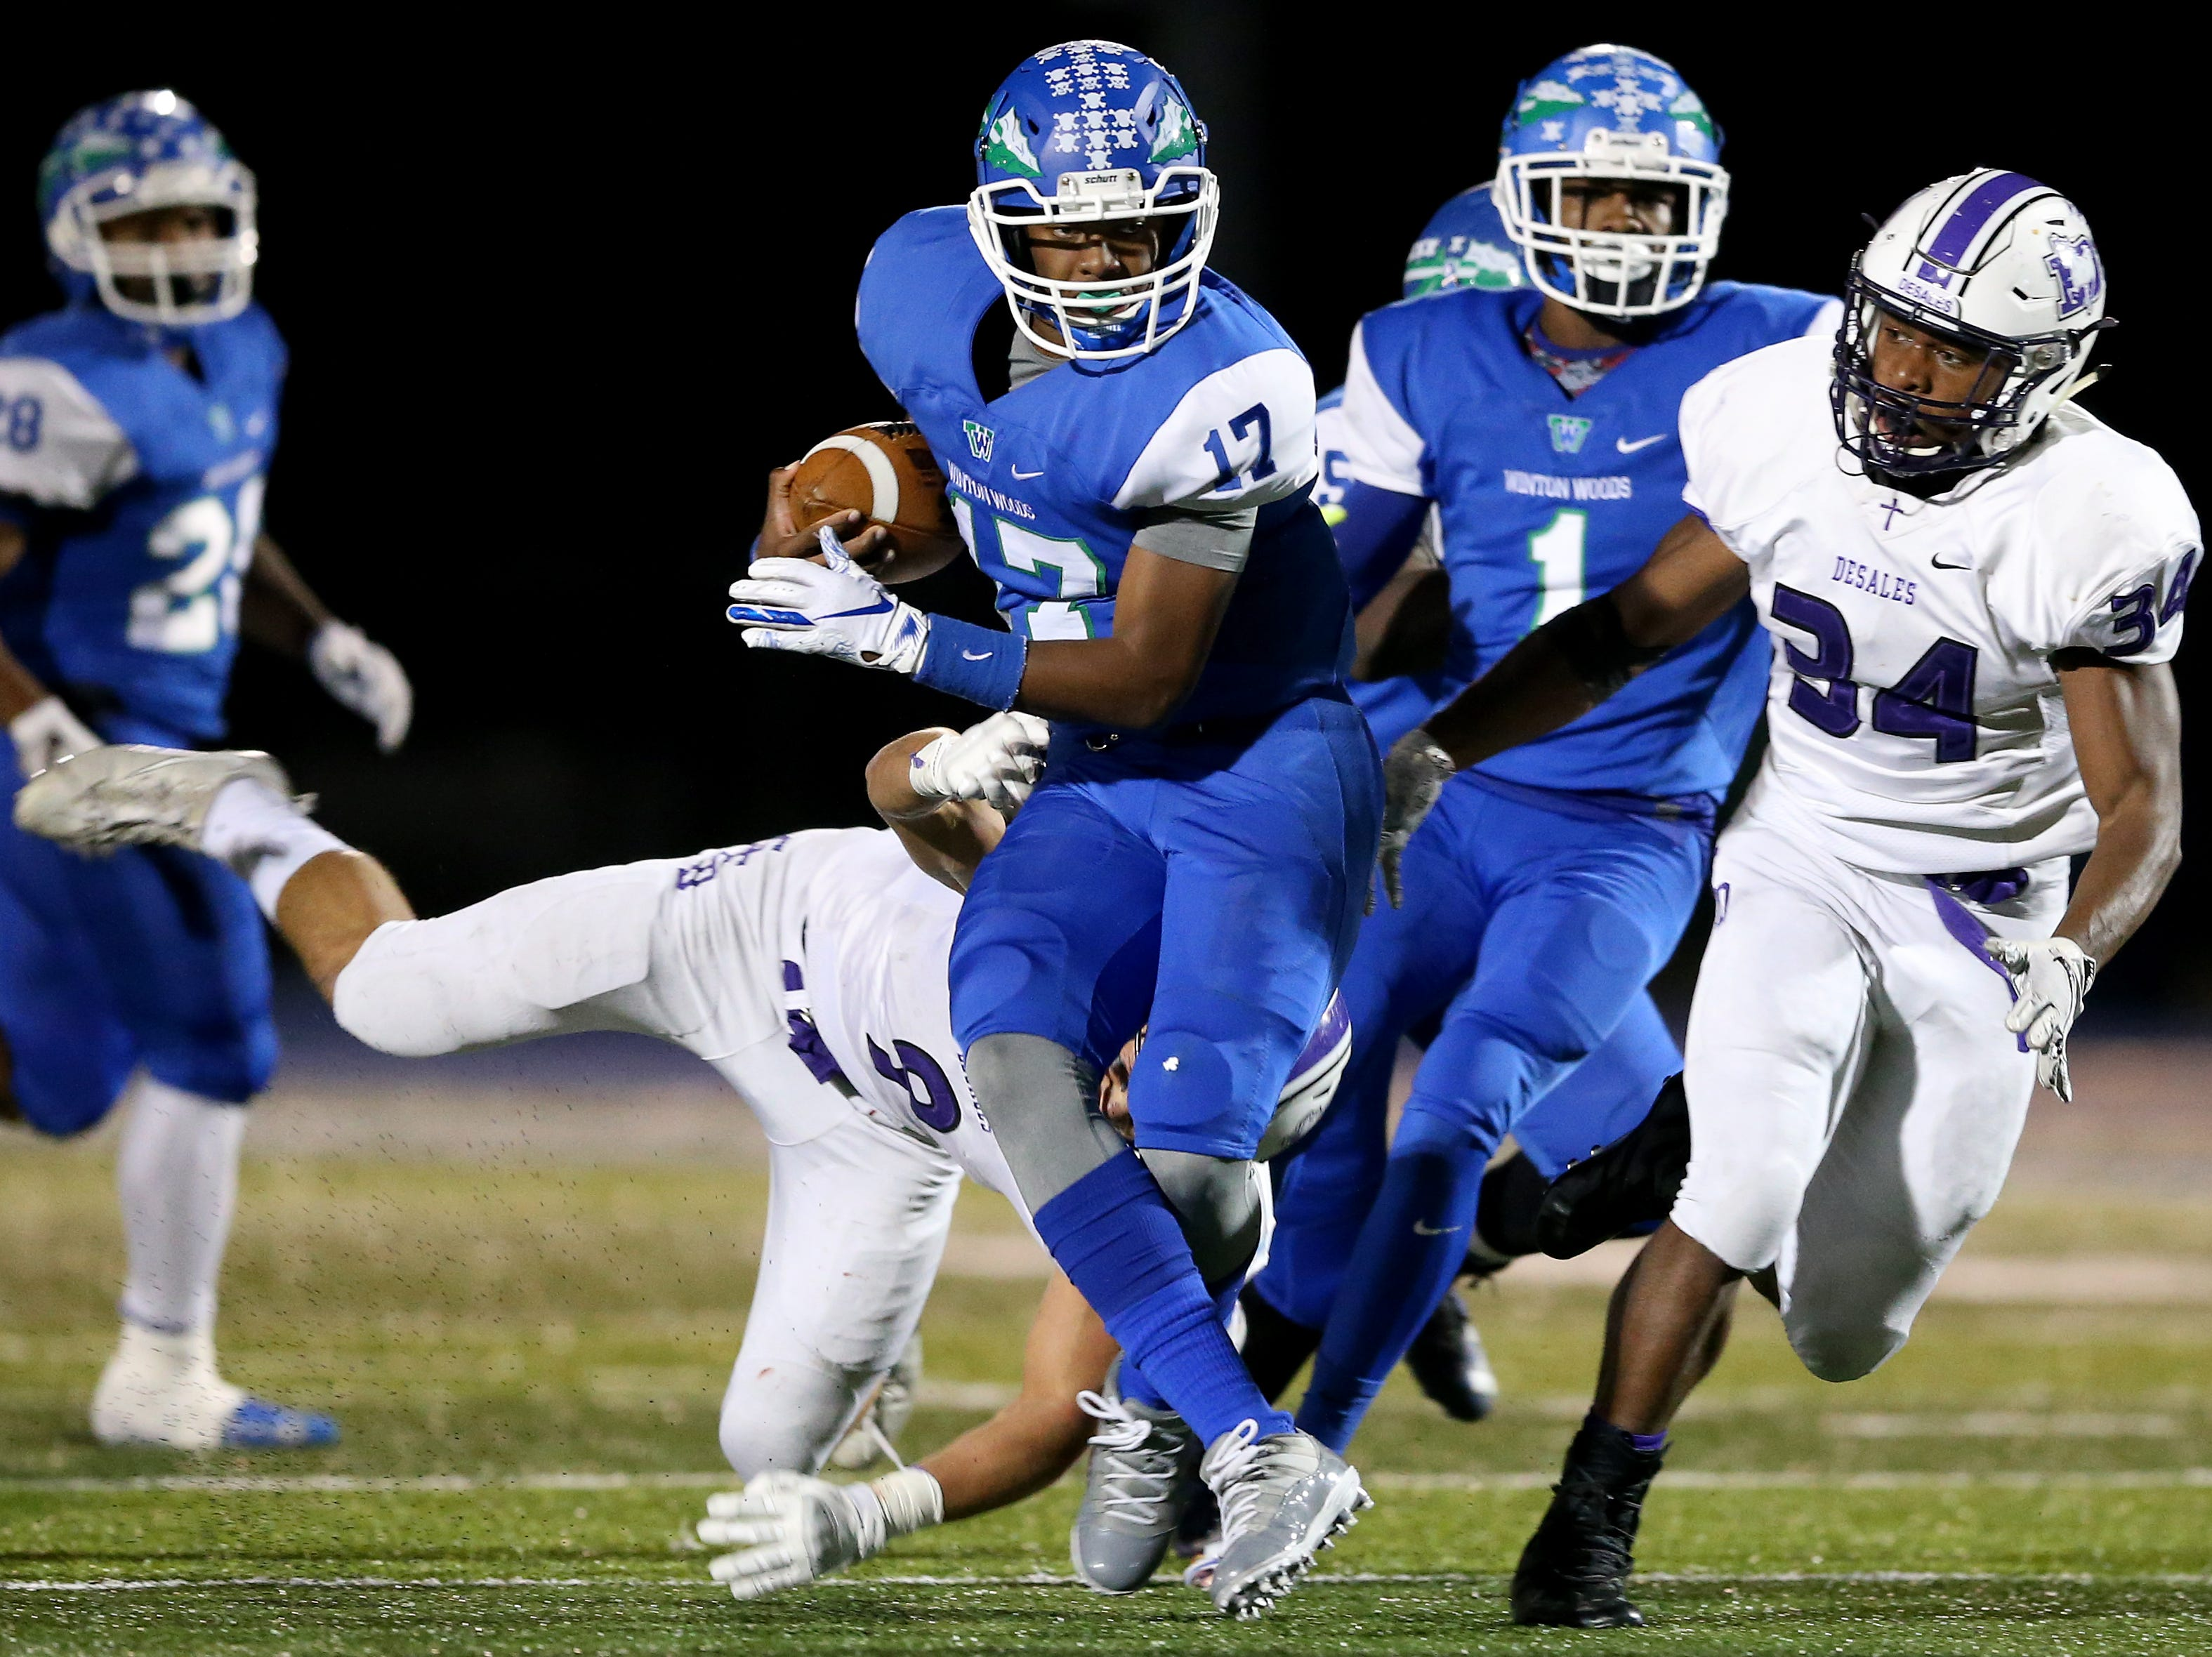 Winton Woods Warriors quarterback MiChale Wingfield (17) spins out of a tackle on a run in the second quarter during a high school football game between St. Francis de Sales and Winton Woods, Friday, Oct. 19, 2018, at Winton Woods High School in Forest Park, Ohio.